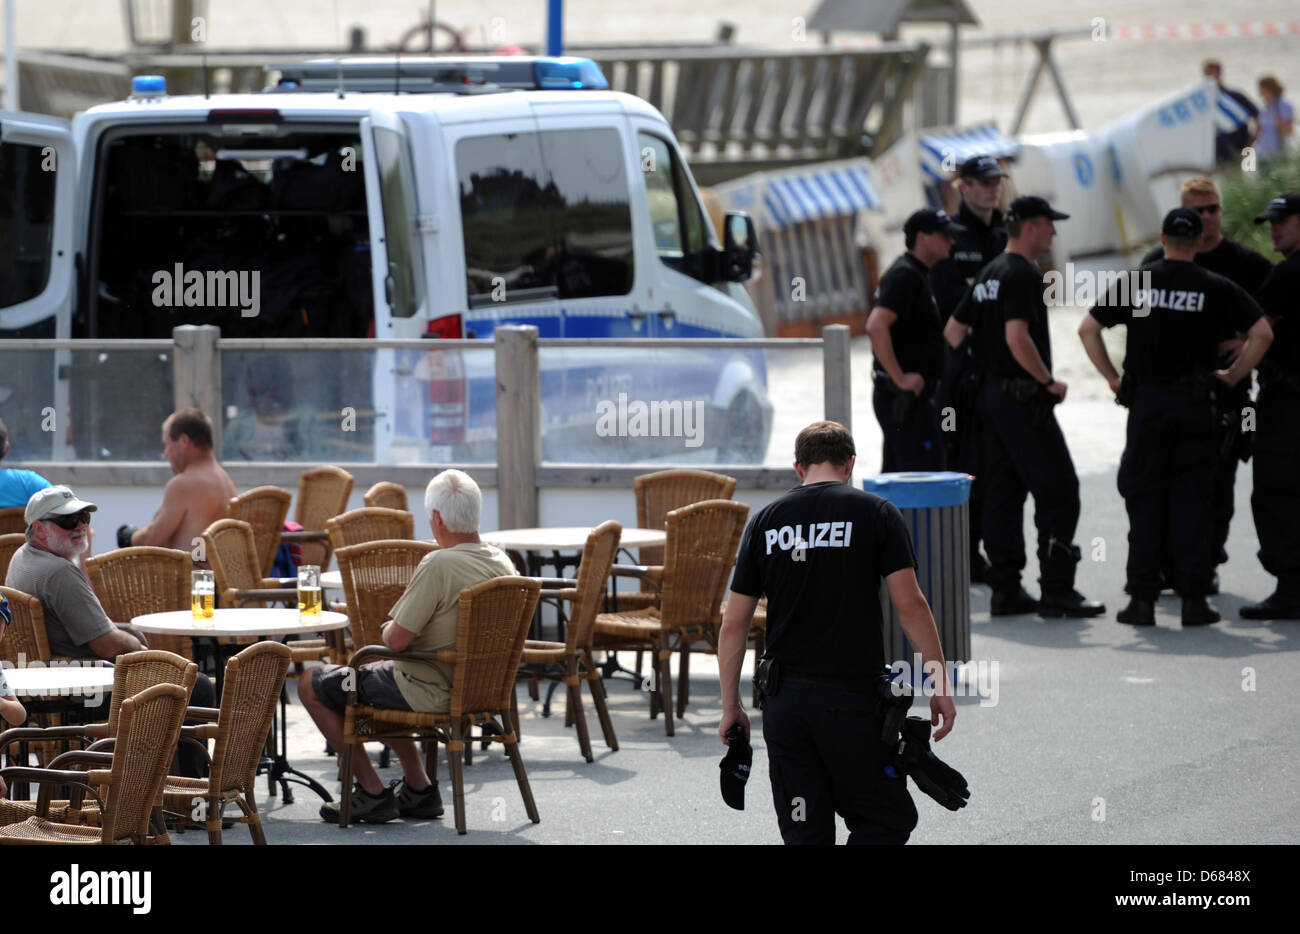 Pensioners sit and drink beer while police officers leave the site where they found the body near the playground - Stock Image